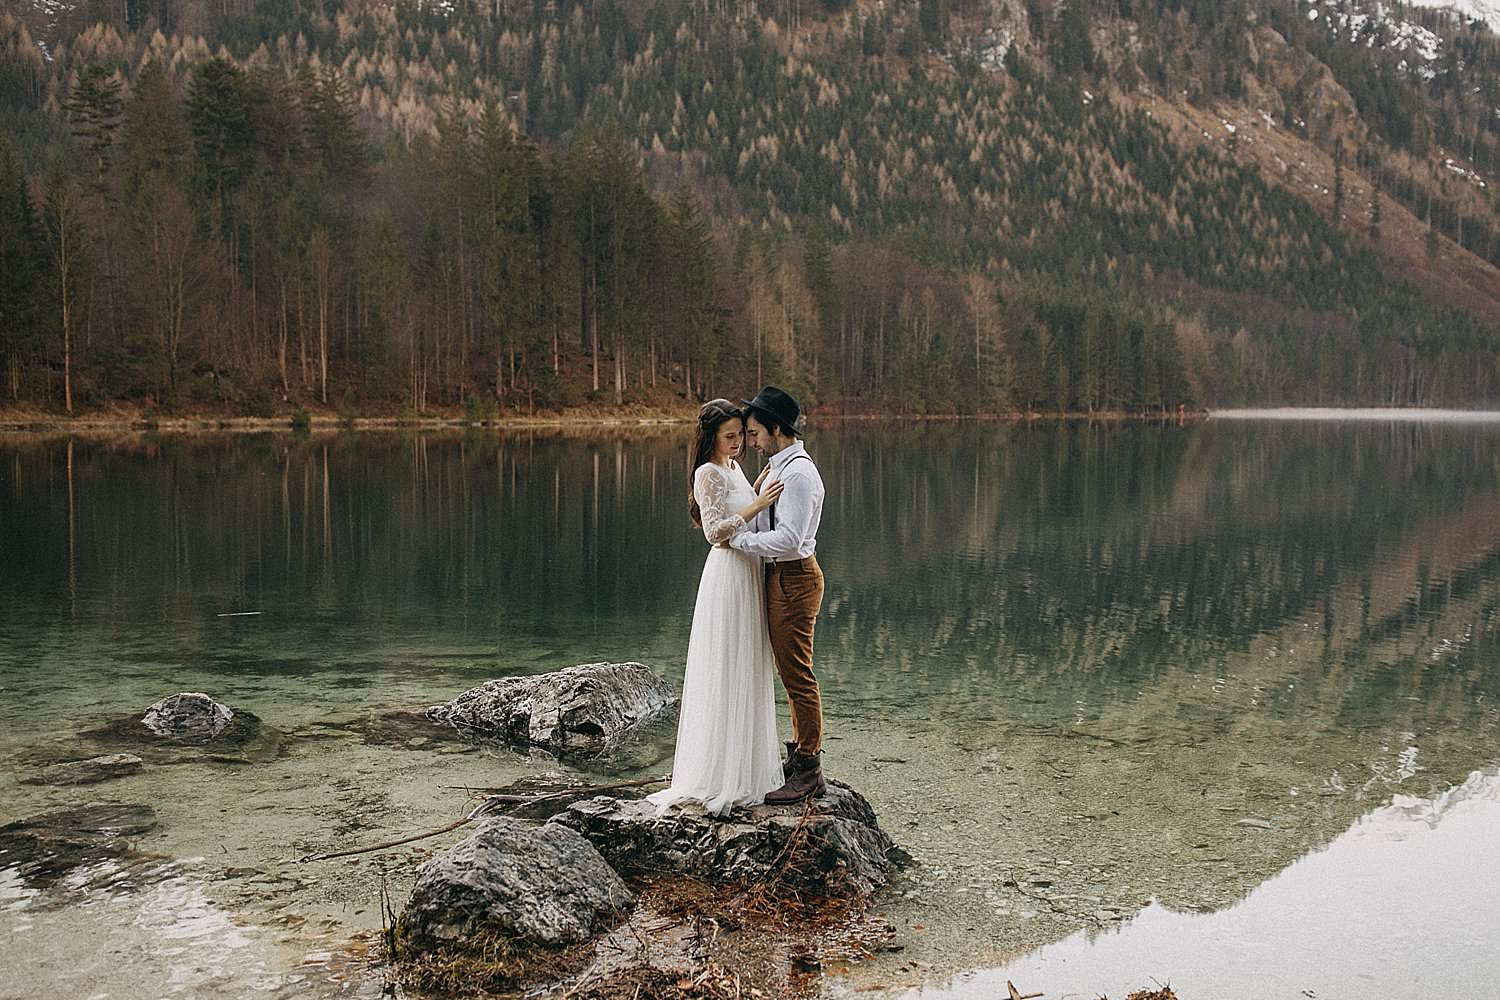 Winter lake wedding Austria Ebensee